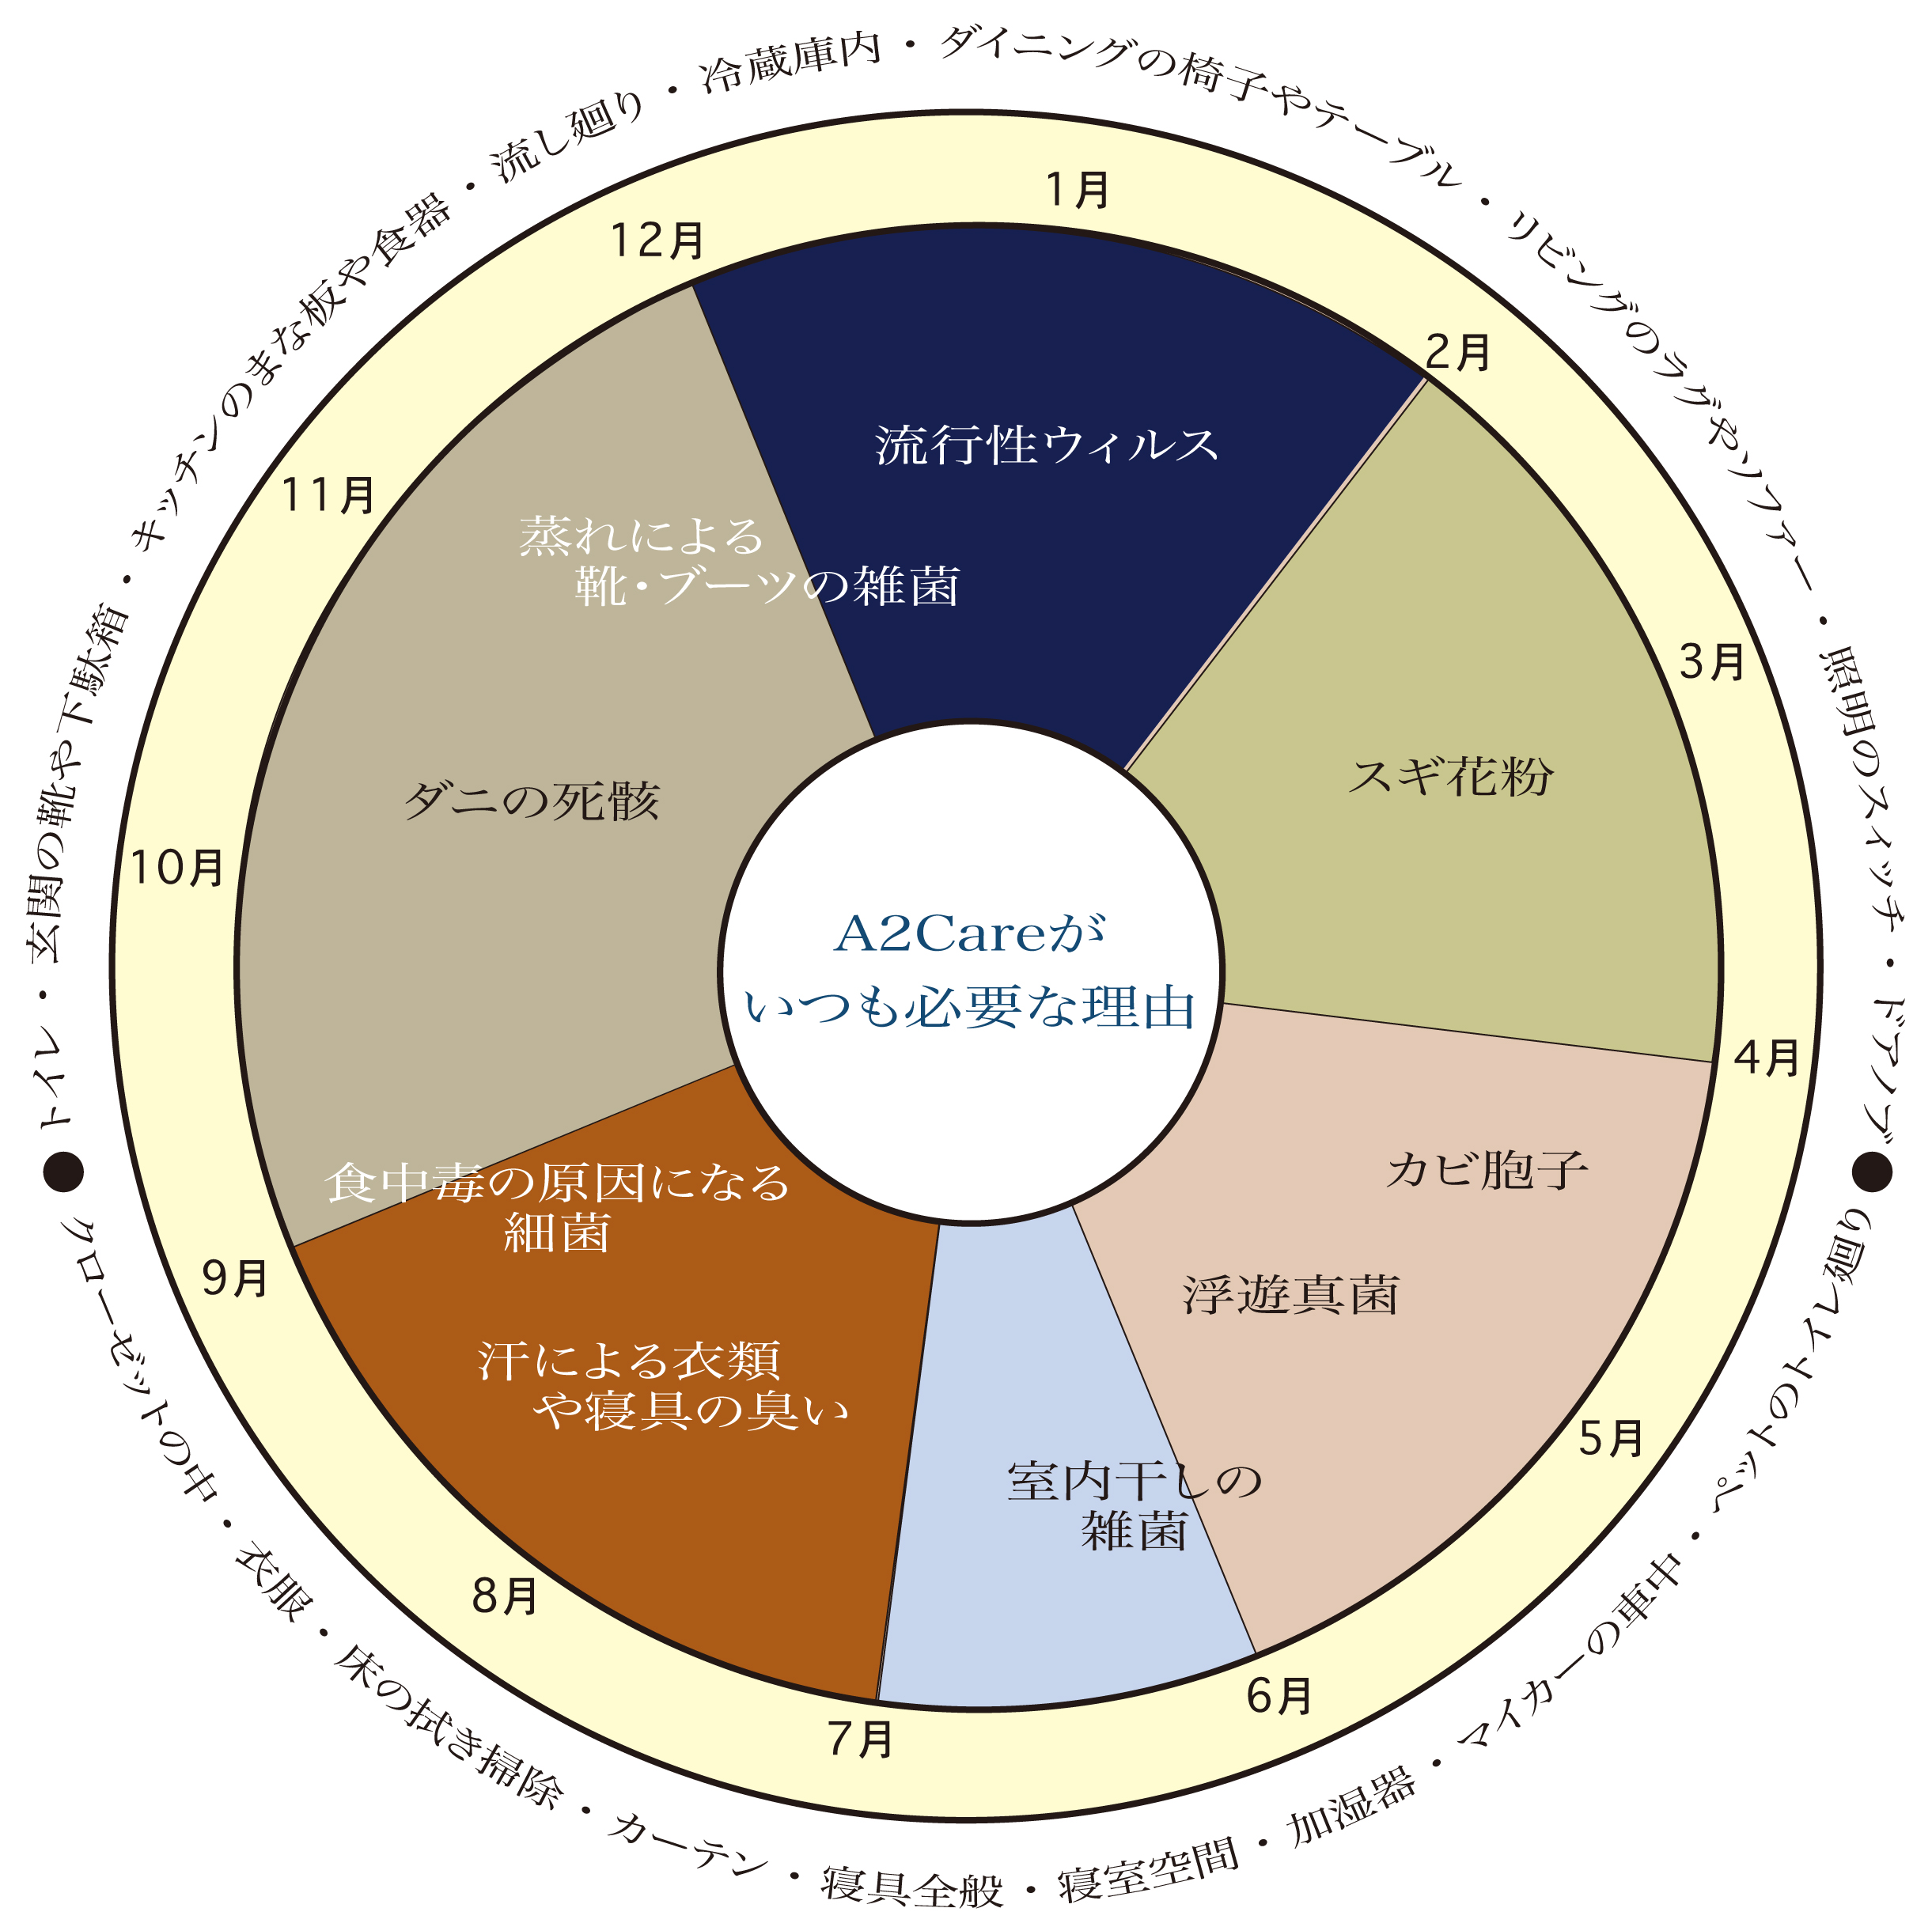 A2Care活用カレンダー